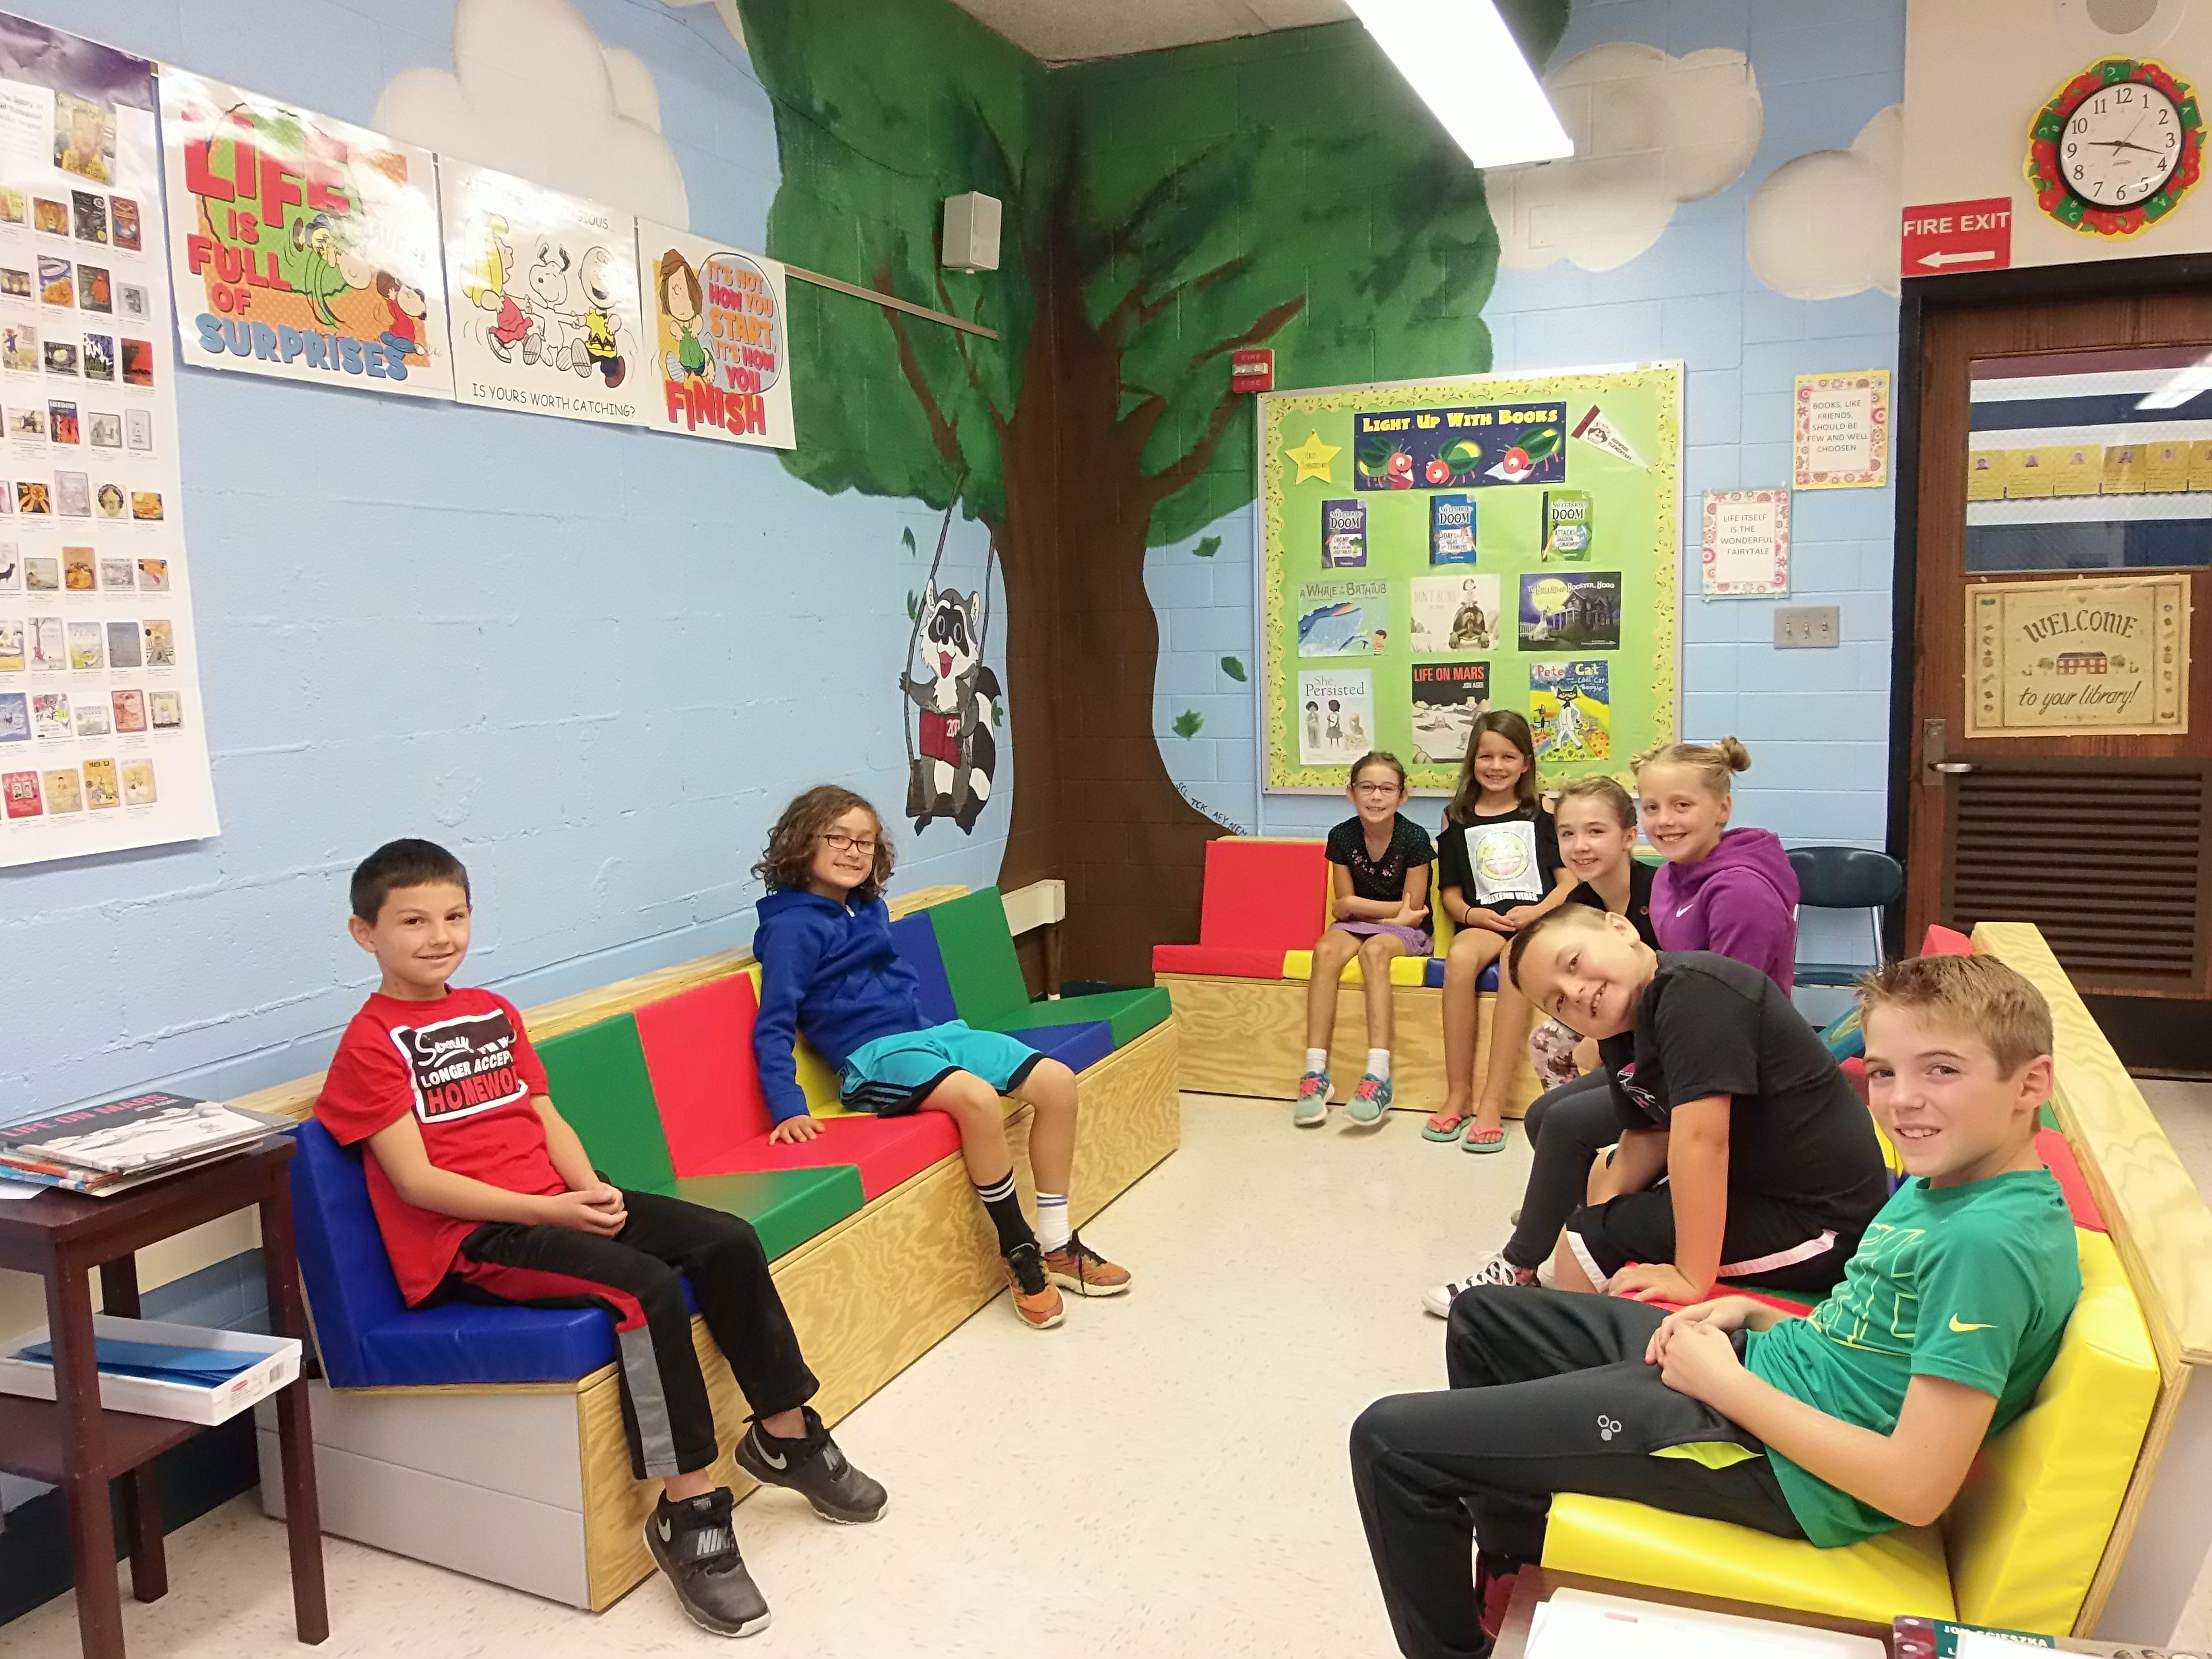 3rd graders enjoying the new mural and seating in the library.